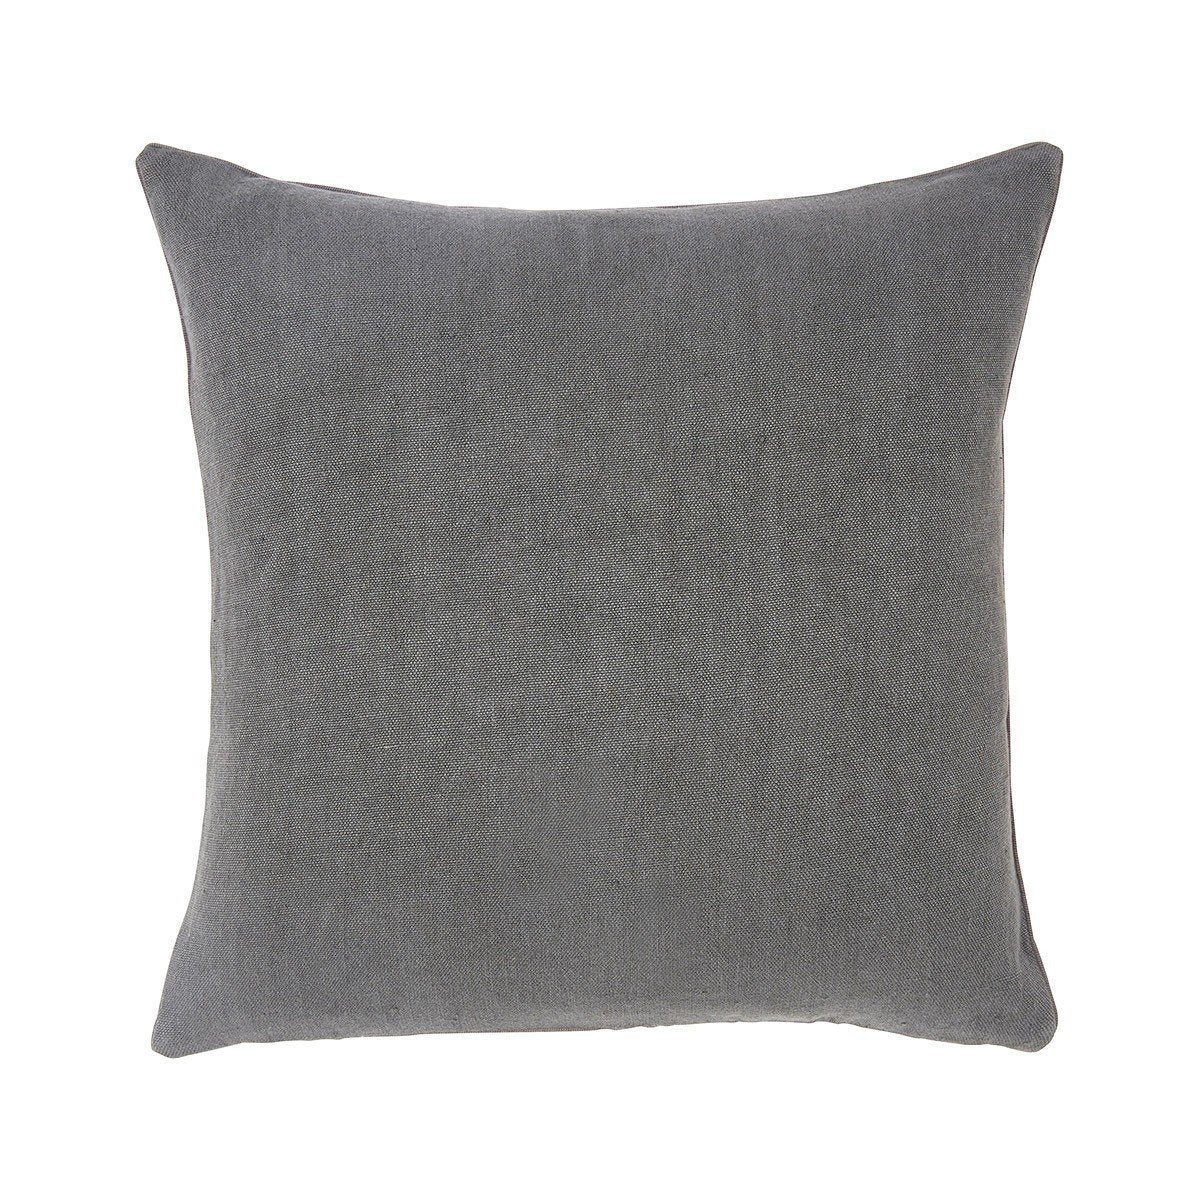 Pigment Ardoise Gray Square Throw Pillow by Iosis | Fig Linens - Front